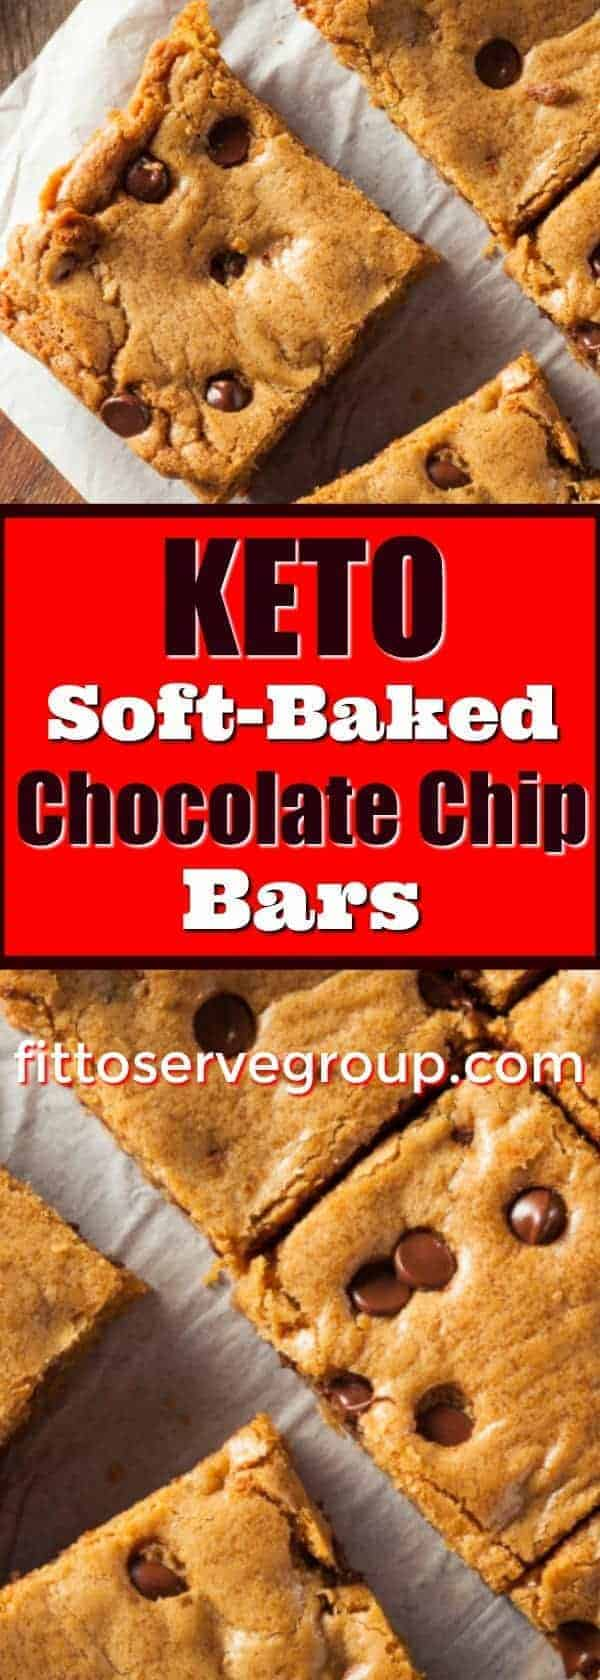 Keto Soft Baked Chocolate Chip Bars. If you're wanting a chocolate chip bar recipe that is low in carbs and keto-friendly, these are it. #ketochocolatechipbars #ketosoftbakedcookies #ketosoftbakedchocolatechipbars #lowcarbsoftbakedcookies #lowcarbcookiebars #lowcarbcookies ketocookies |keto cookie bars